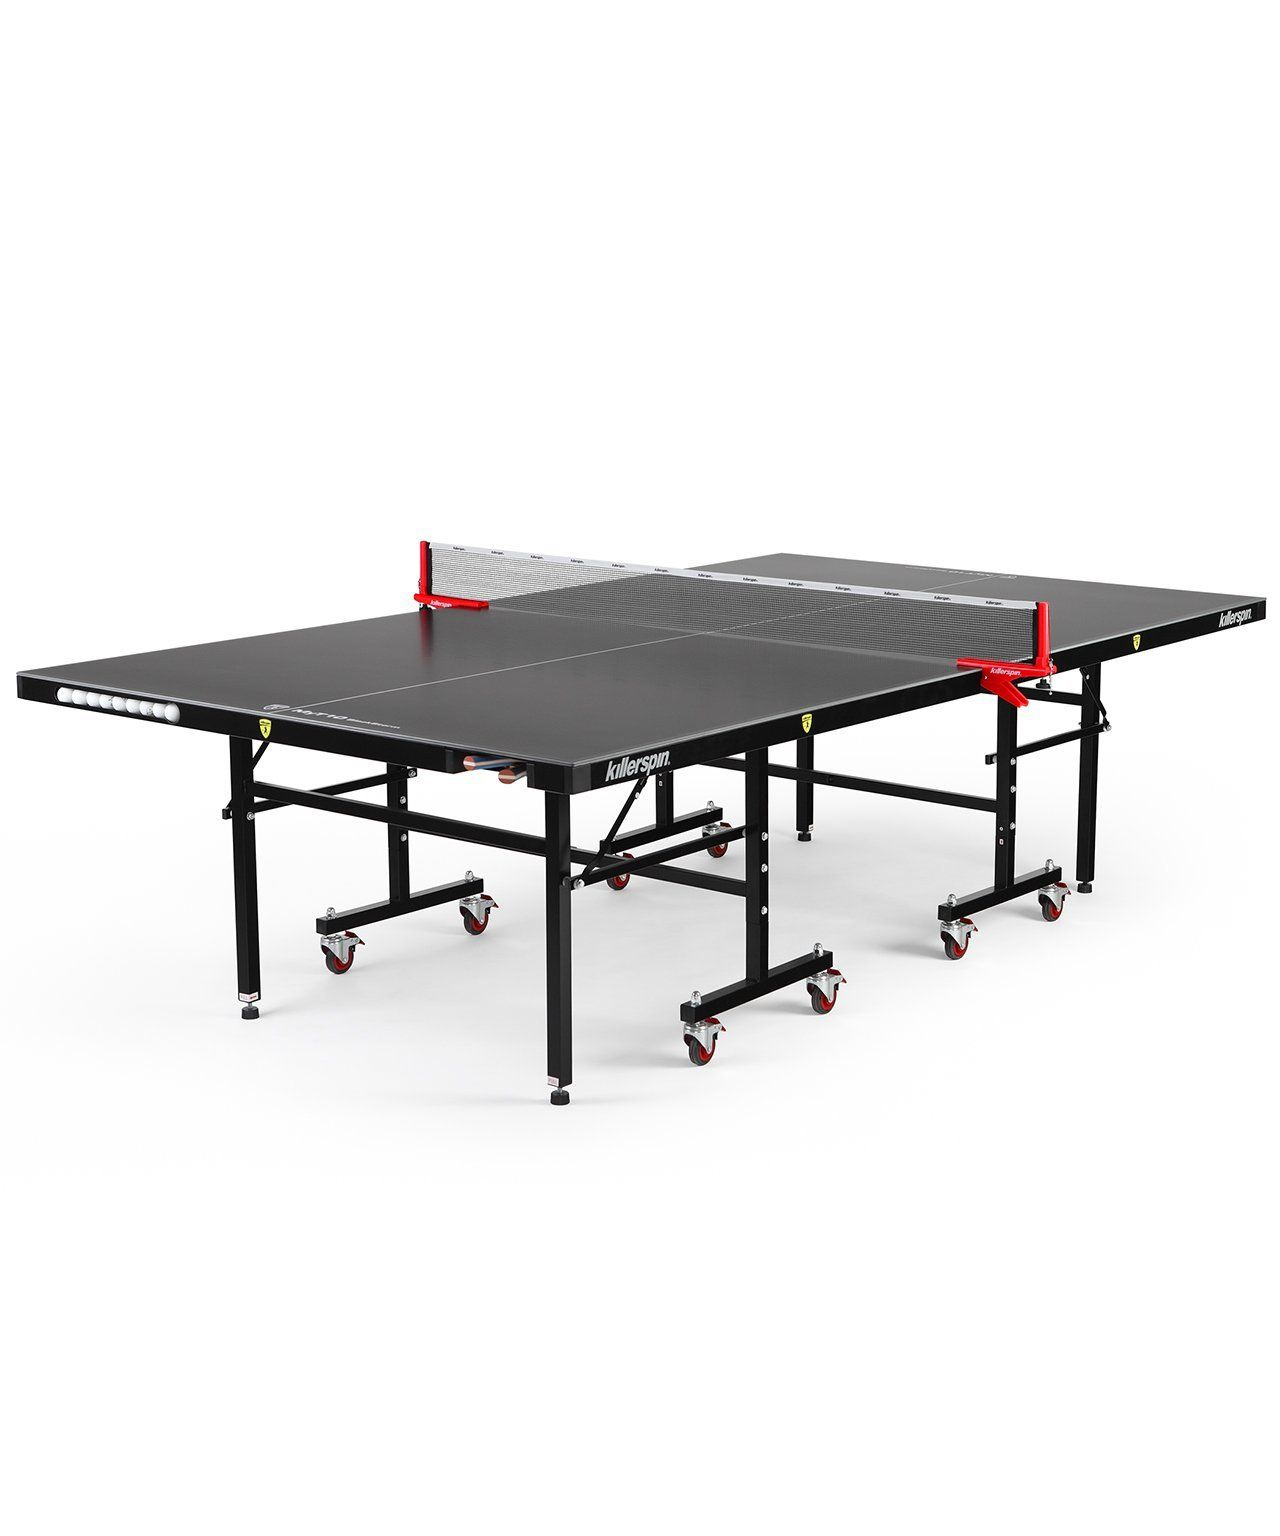 Myt10 Outdoor Table Tennis Table Various Colors When It Comes To Durability Quality An Outdoor Table Tennis Table Ping Pong Table Outdoor Ping Pong Table